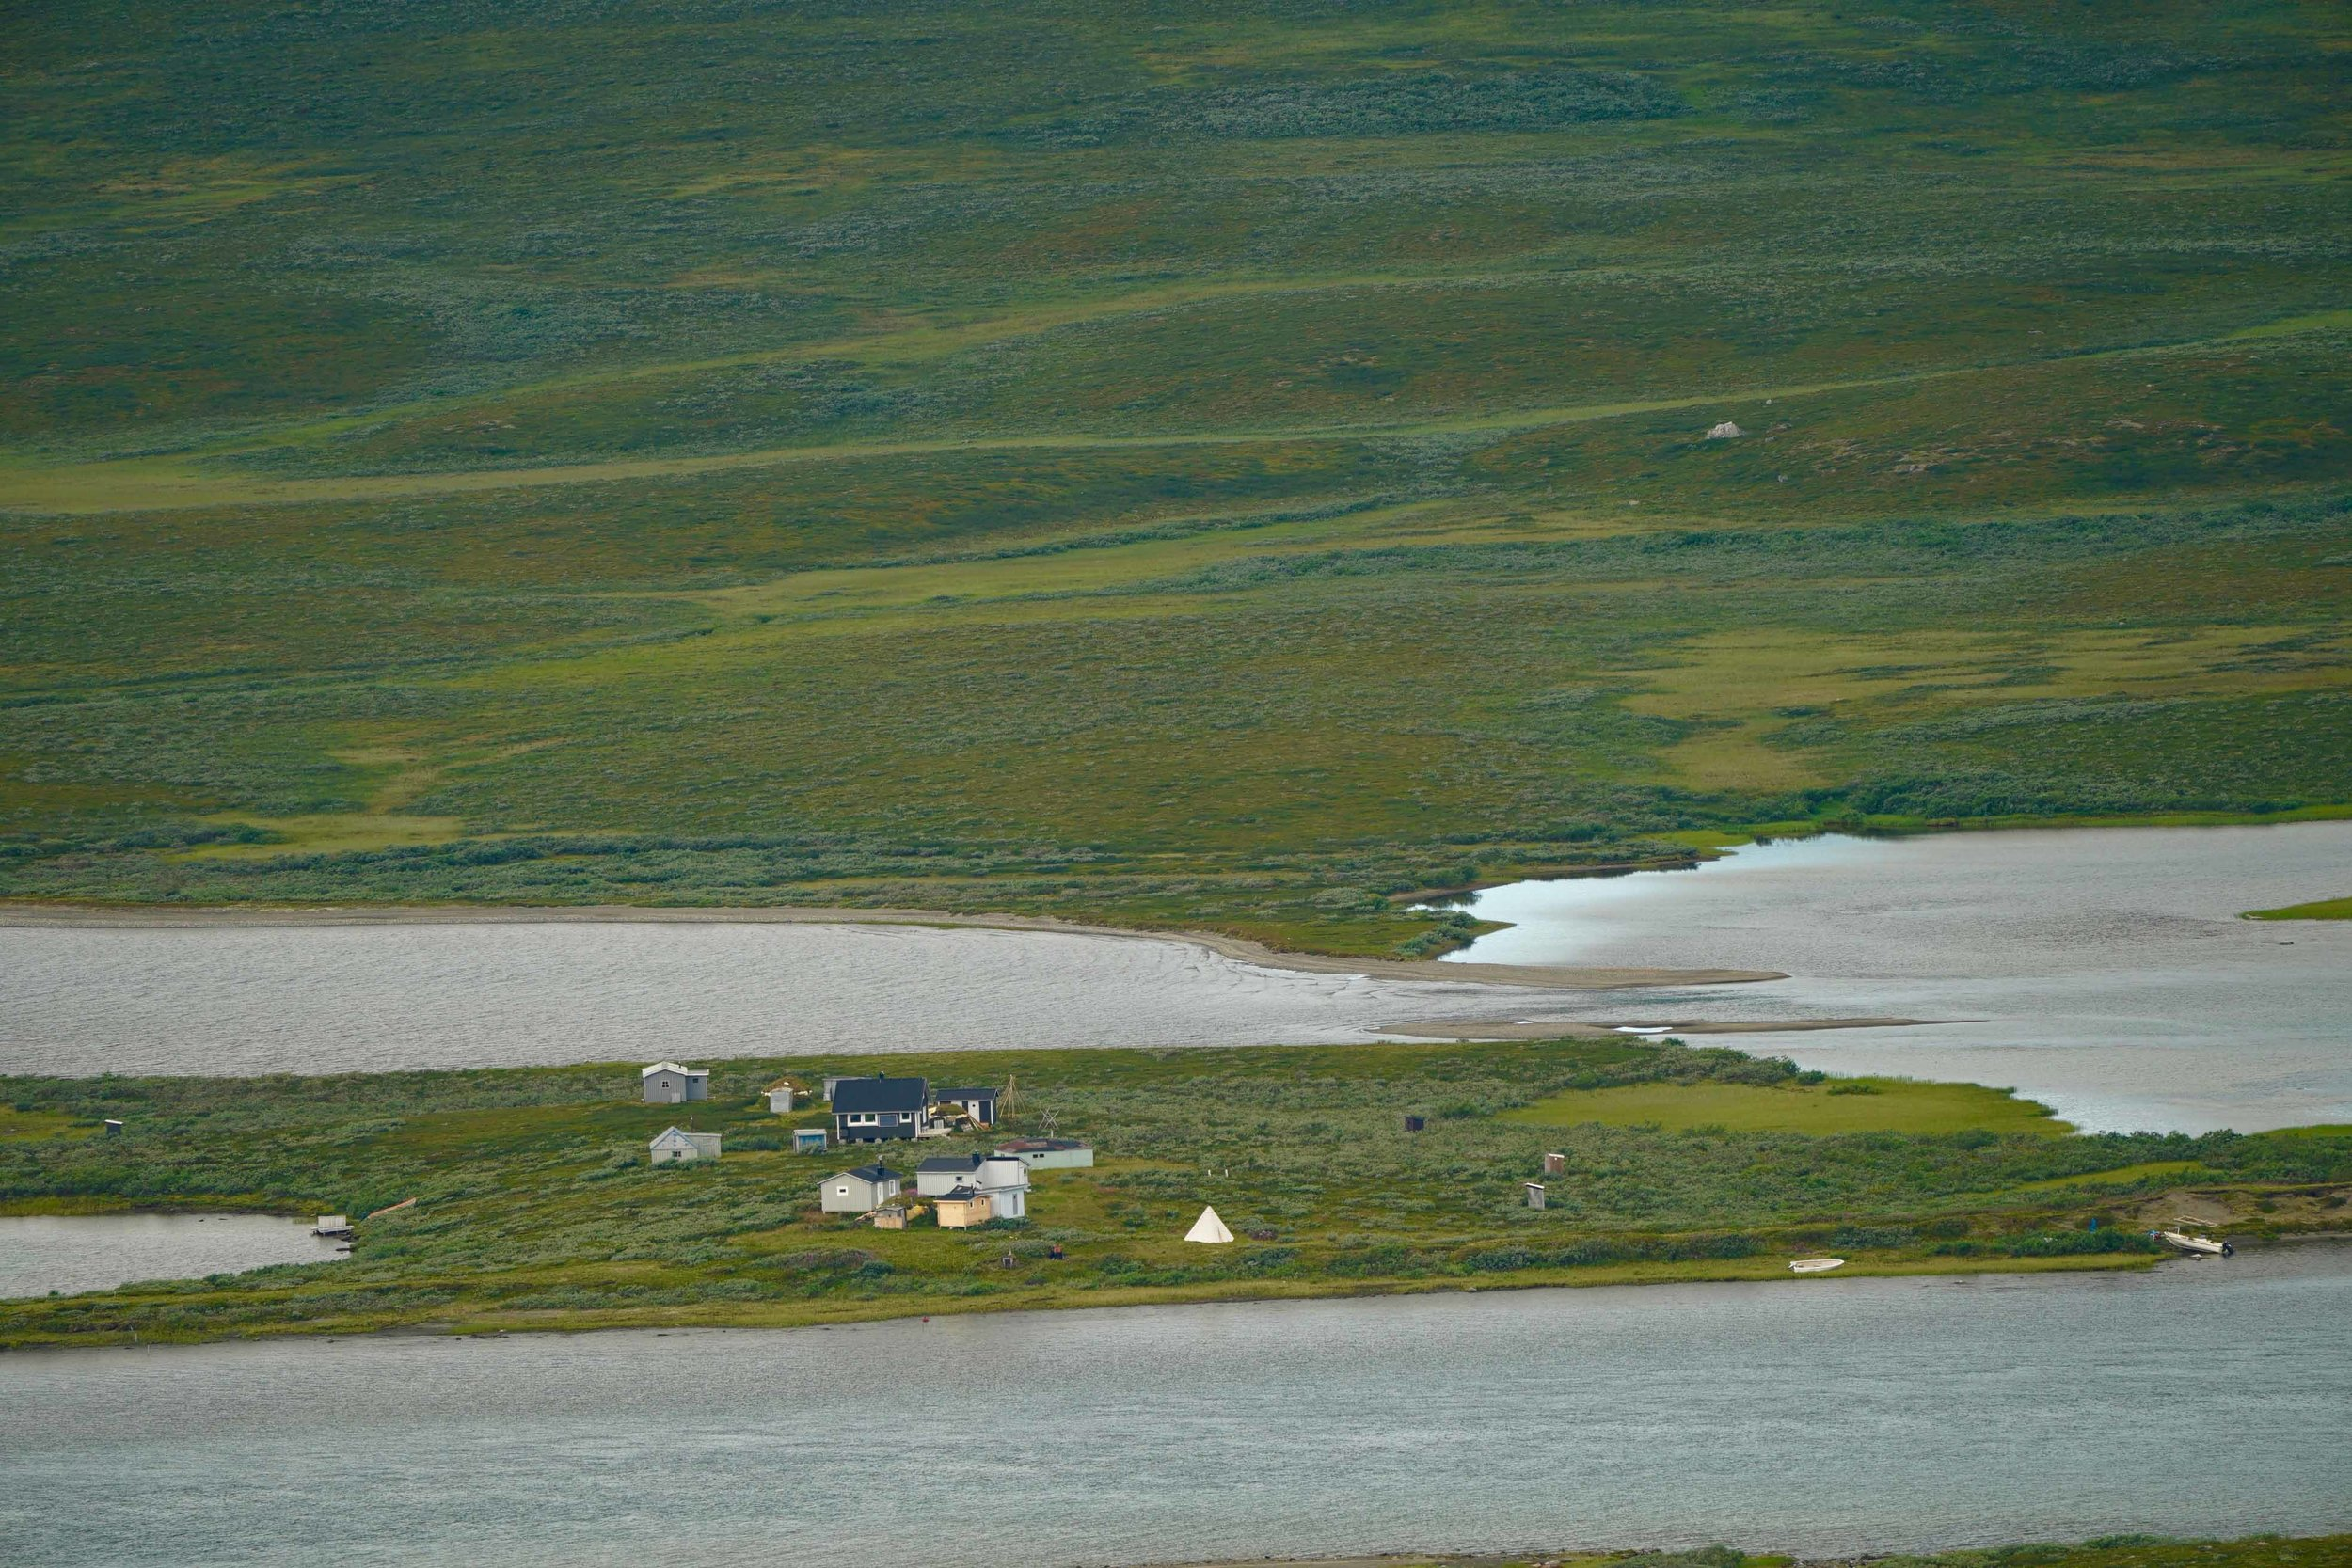 A remote Sámi village.The Sámi people are a Finno-Ugric people inhabiting Sápmi, which today encompasses large northern parts of Norway and Sweden, northern parts of Finland, and the Murmansk Oblast of Russia. The Sámi have historically been known in English as Lapps.